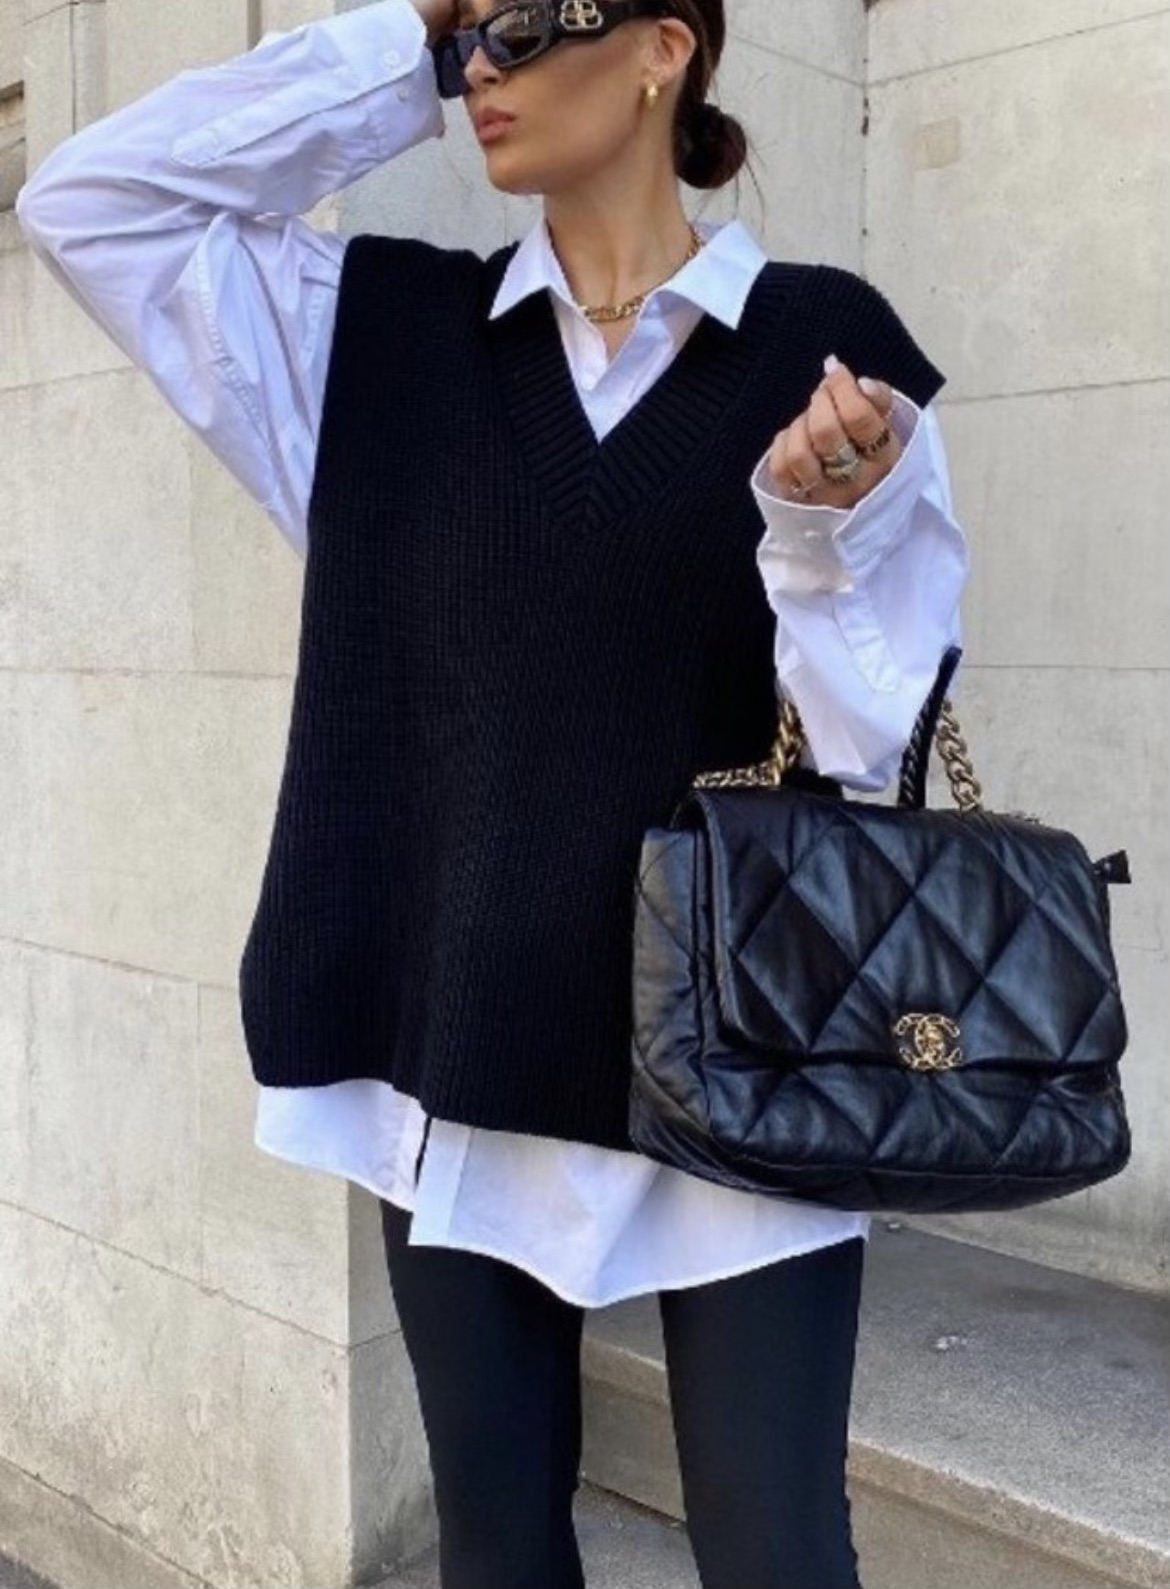 how to style a sweater vest, sweater vest inspiration, sweater vest outfit, sweater vest ideas, sweater vest outfit ideas, street style sweater vest outfit, neutral sweater vest, outfit ideas, fall outfit ideas, fall 2021 outfits, fall 2021 trends